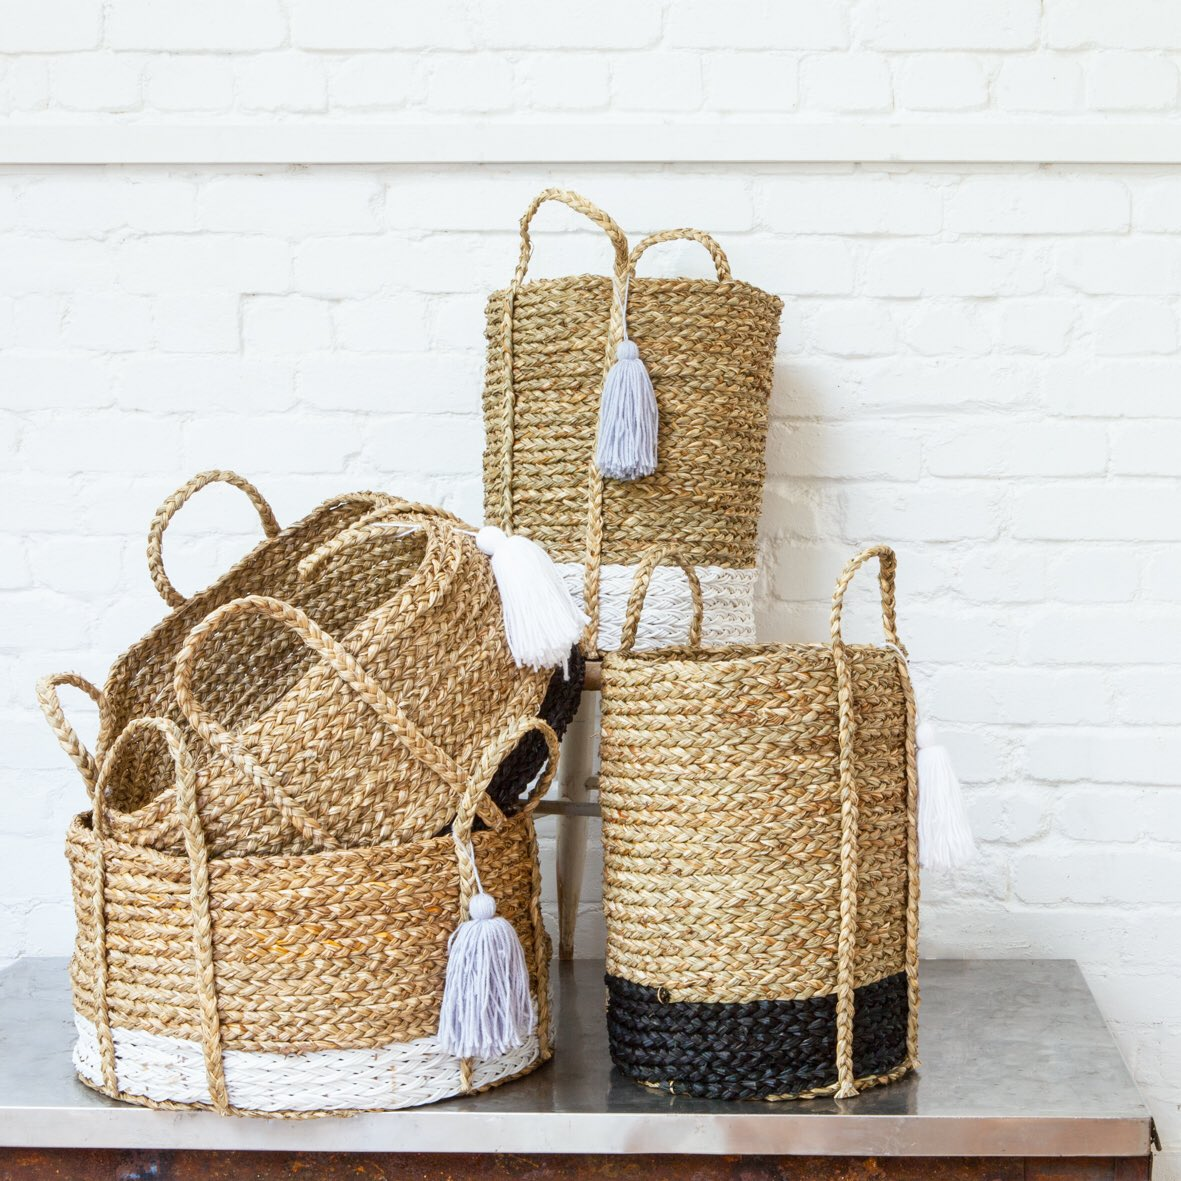 Busy and exciting week ahead configuring shop displays. We love these baskets. #itsallinthedetail #upsidedowndesign #shoplaunch #nextweek!<br>http://pic.twitter.com/KrH6UQpOPF